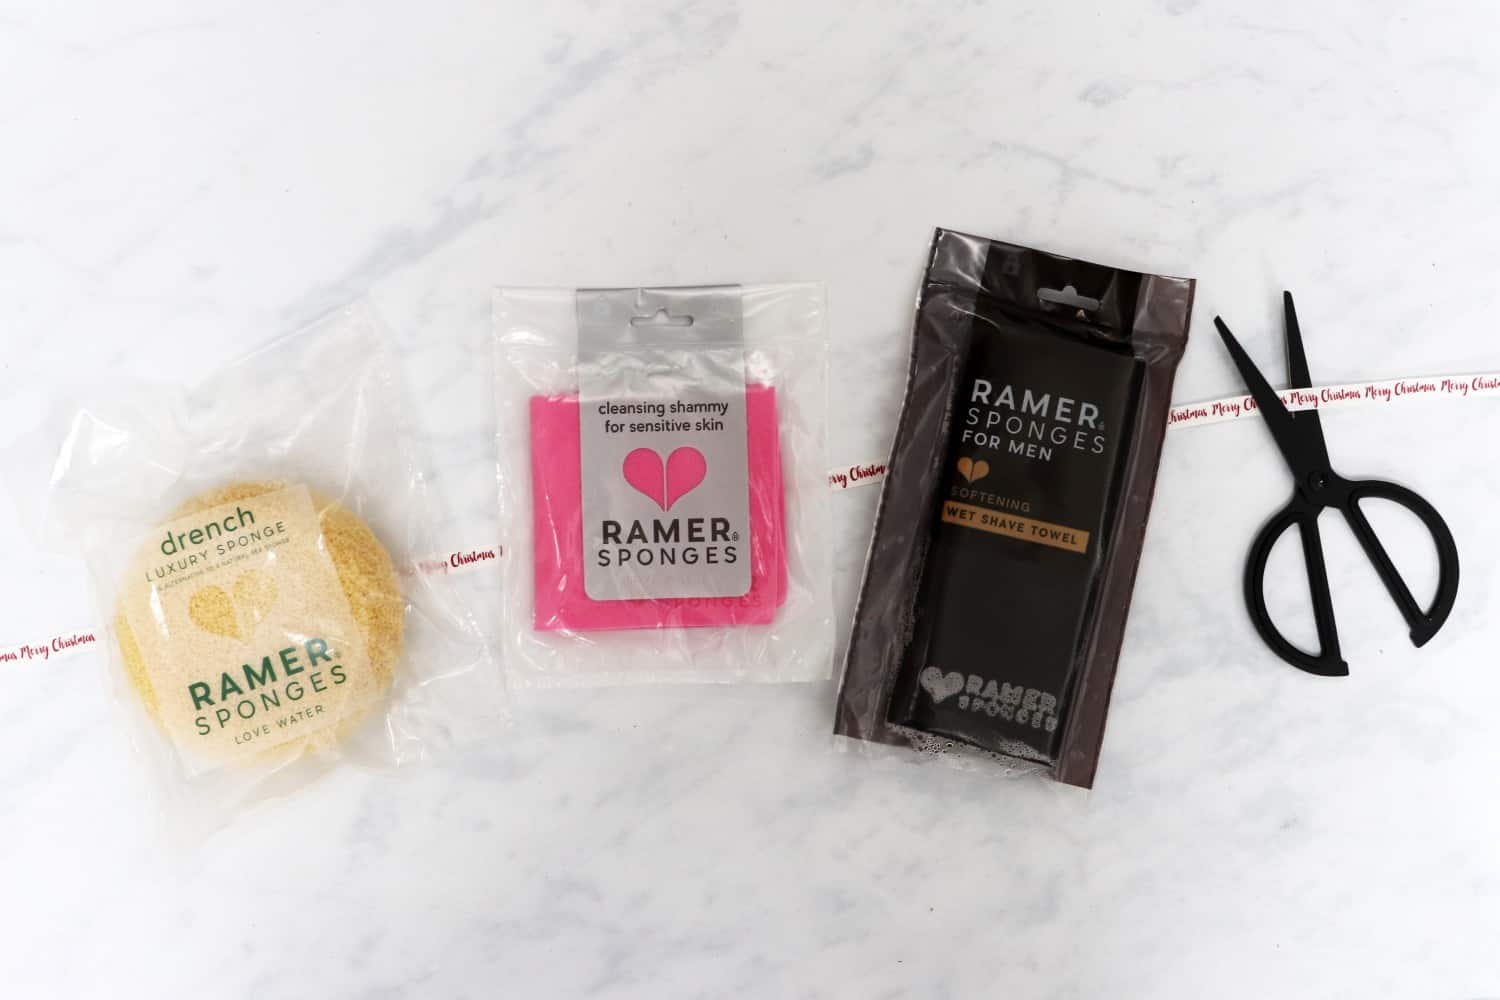 Ramer Sponges Drench Luxury Sponge, Cleansing Shammy and Wet Shave Towel